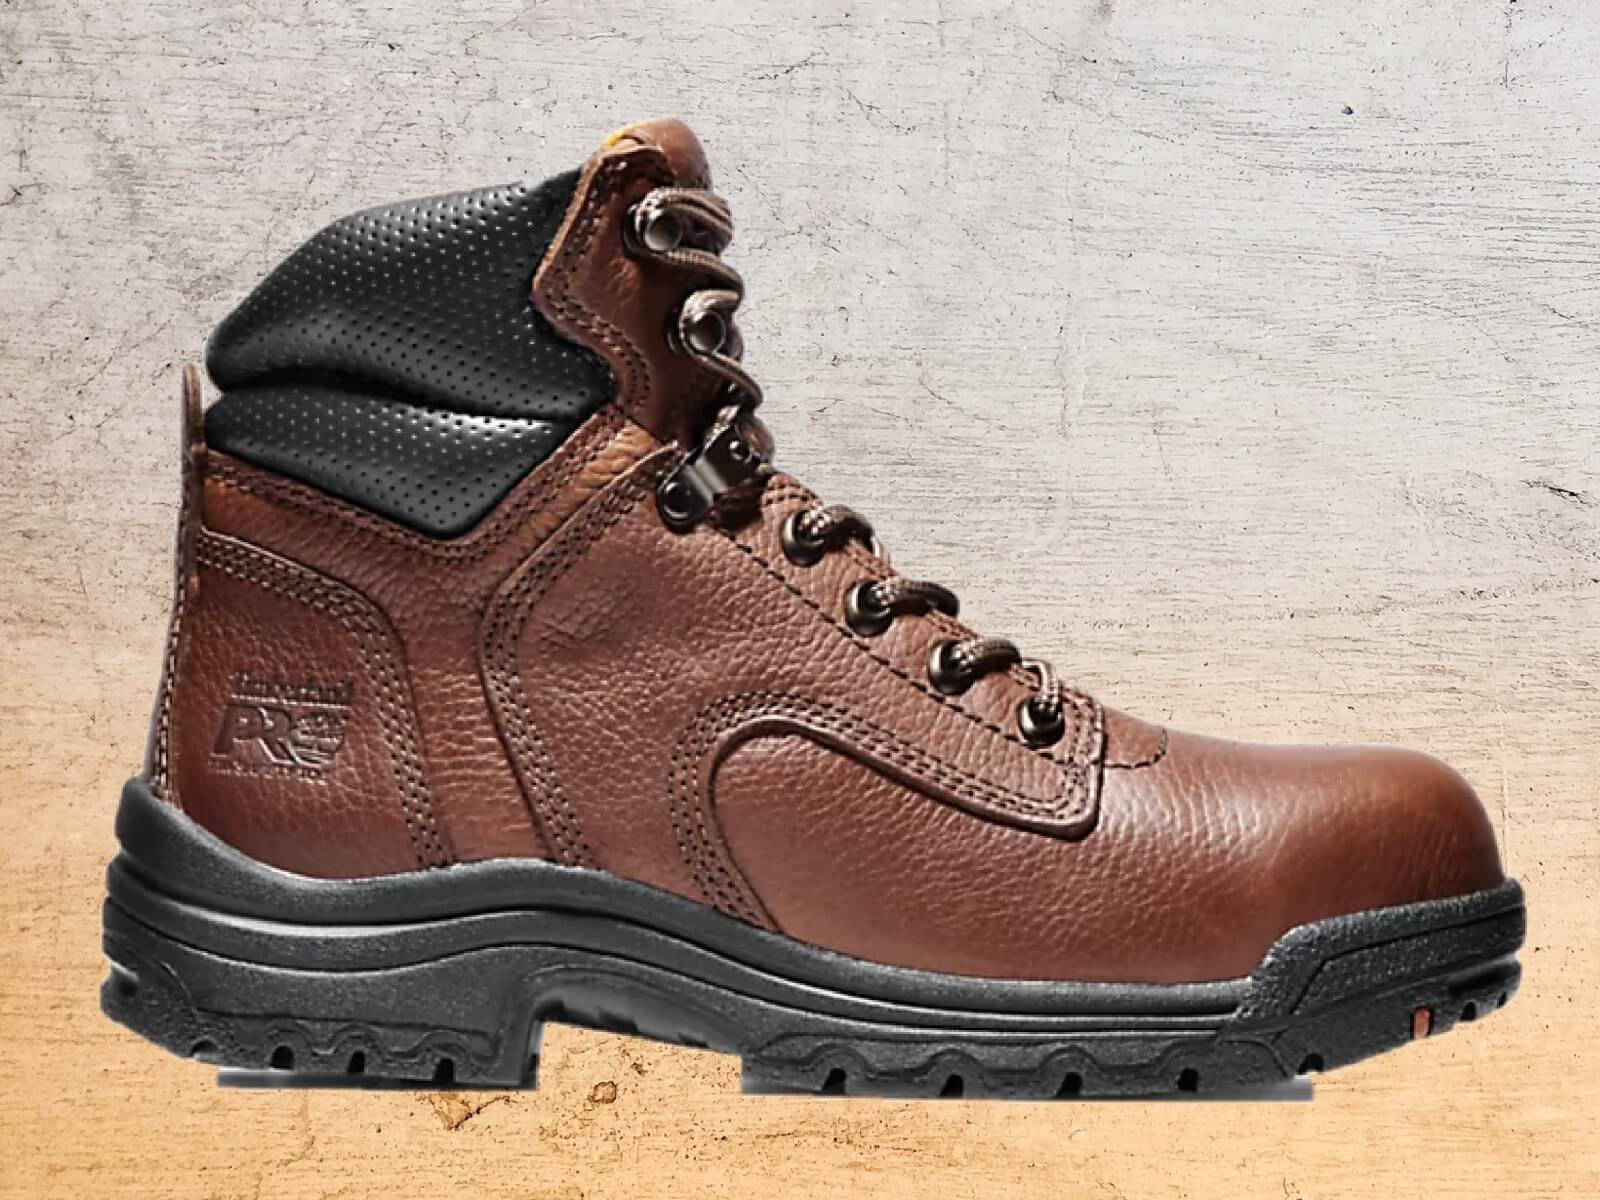 Timberland PRO Titan 6-inch work boots in brown for women